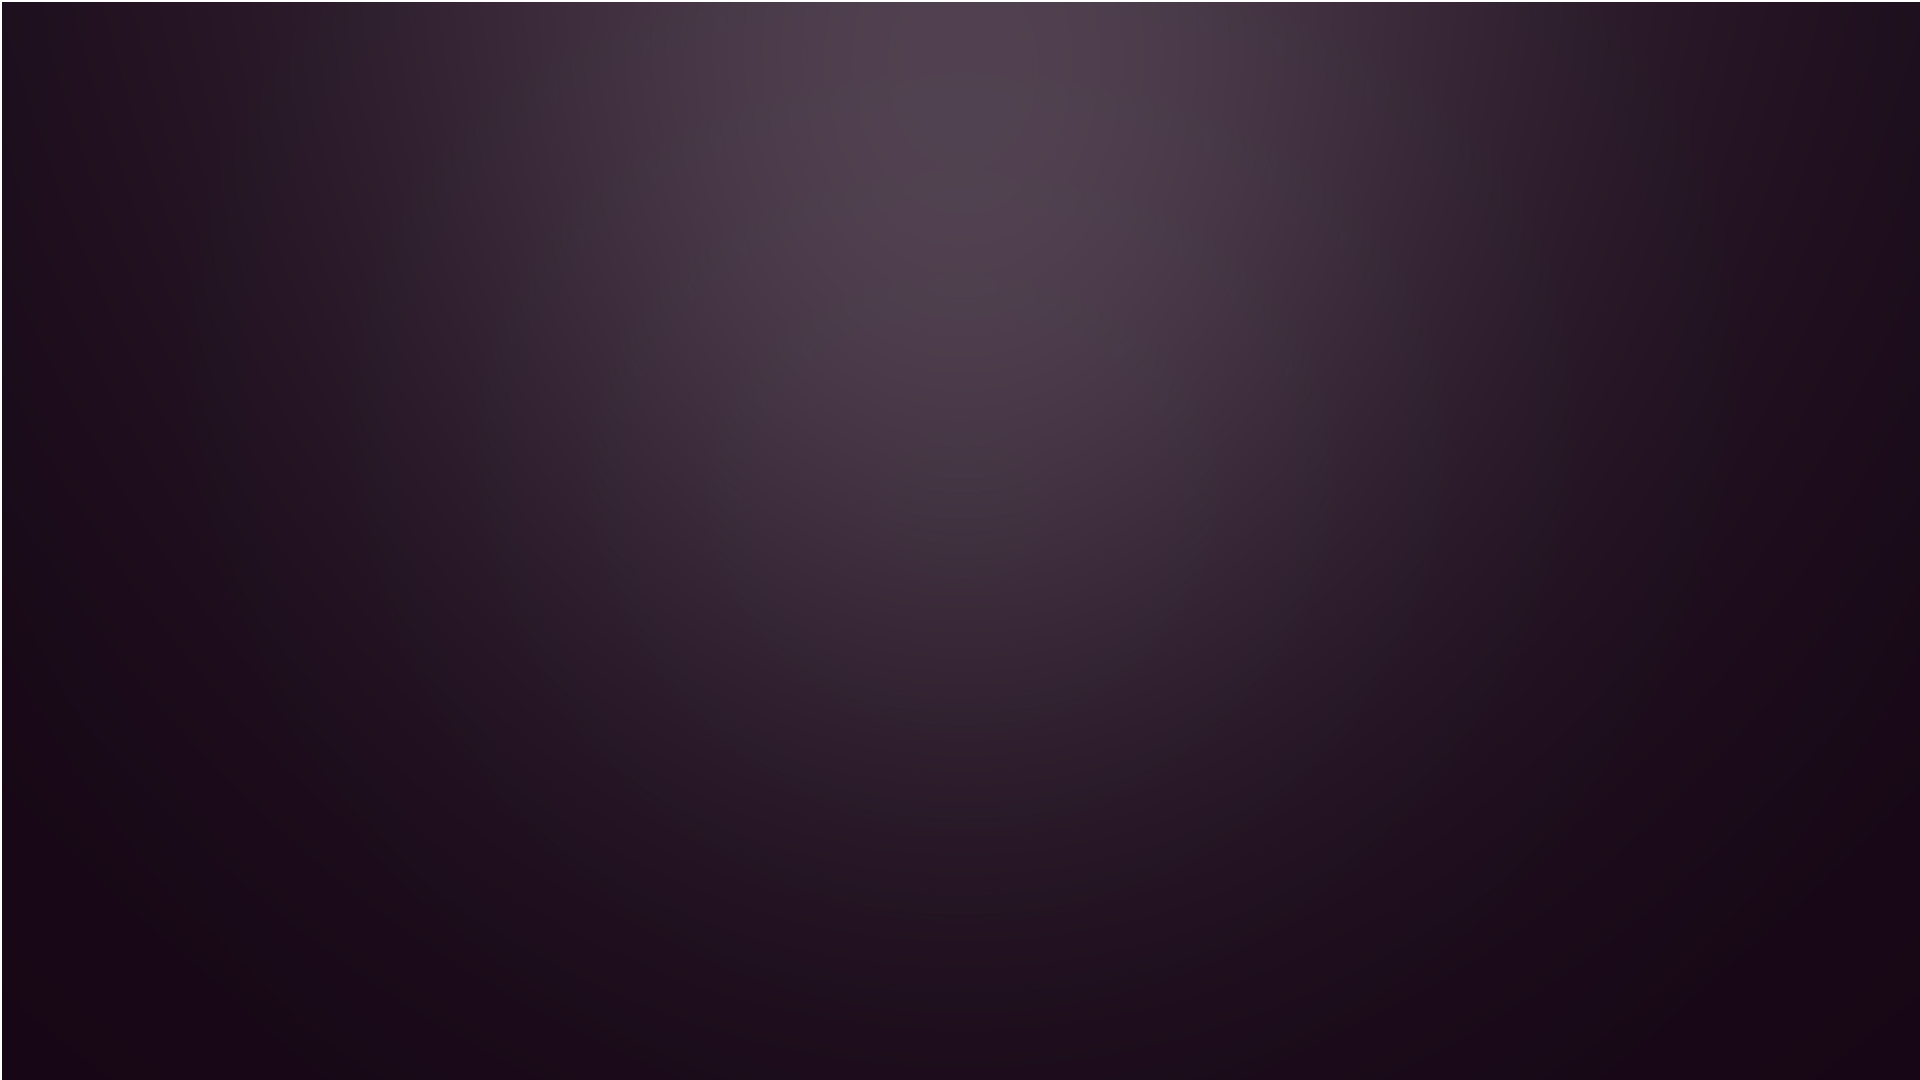 Dark Purple Backgrounds Wallpaper Cave